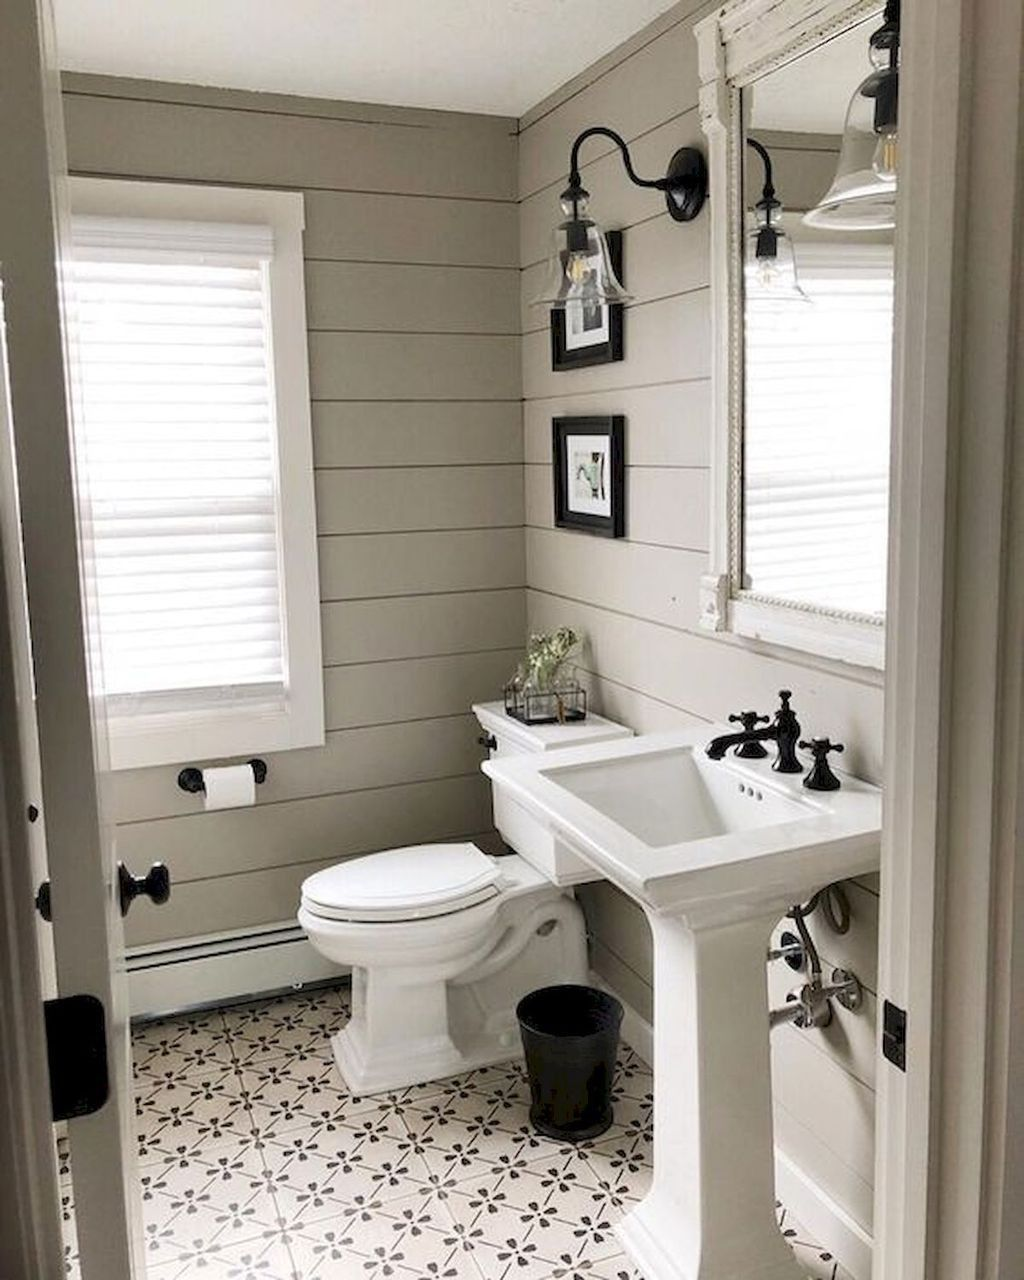 Best Of Small Farmhouse Bathroom With Pedestal Sink Bathroom Laundry In 2020 Small Farmhouse Bathroom Bathrooms Remodel Small Bathroom Remodel